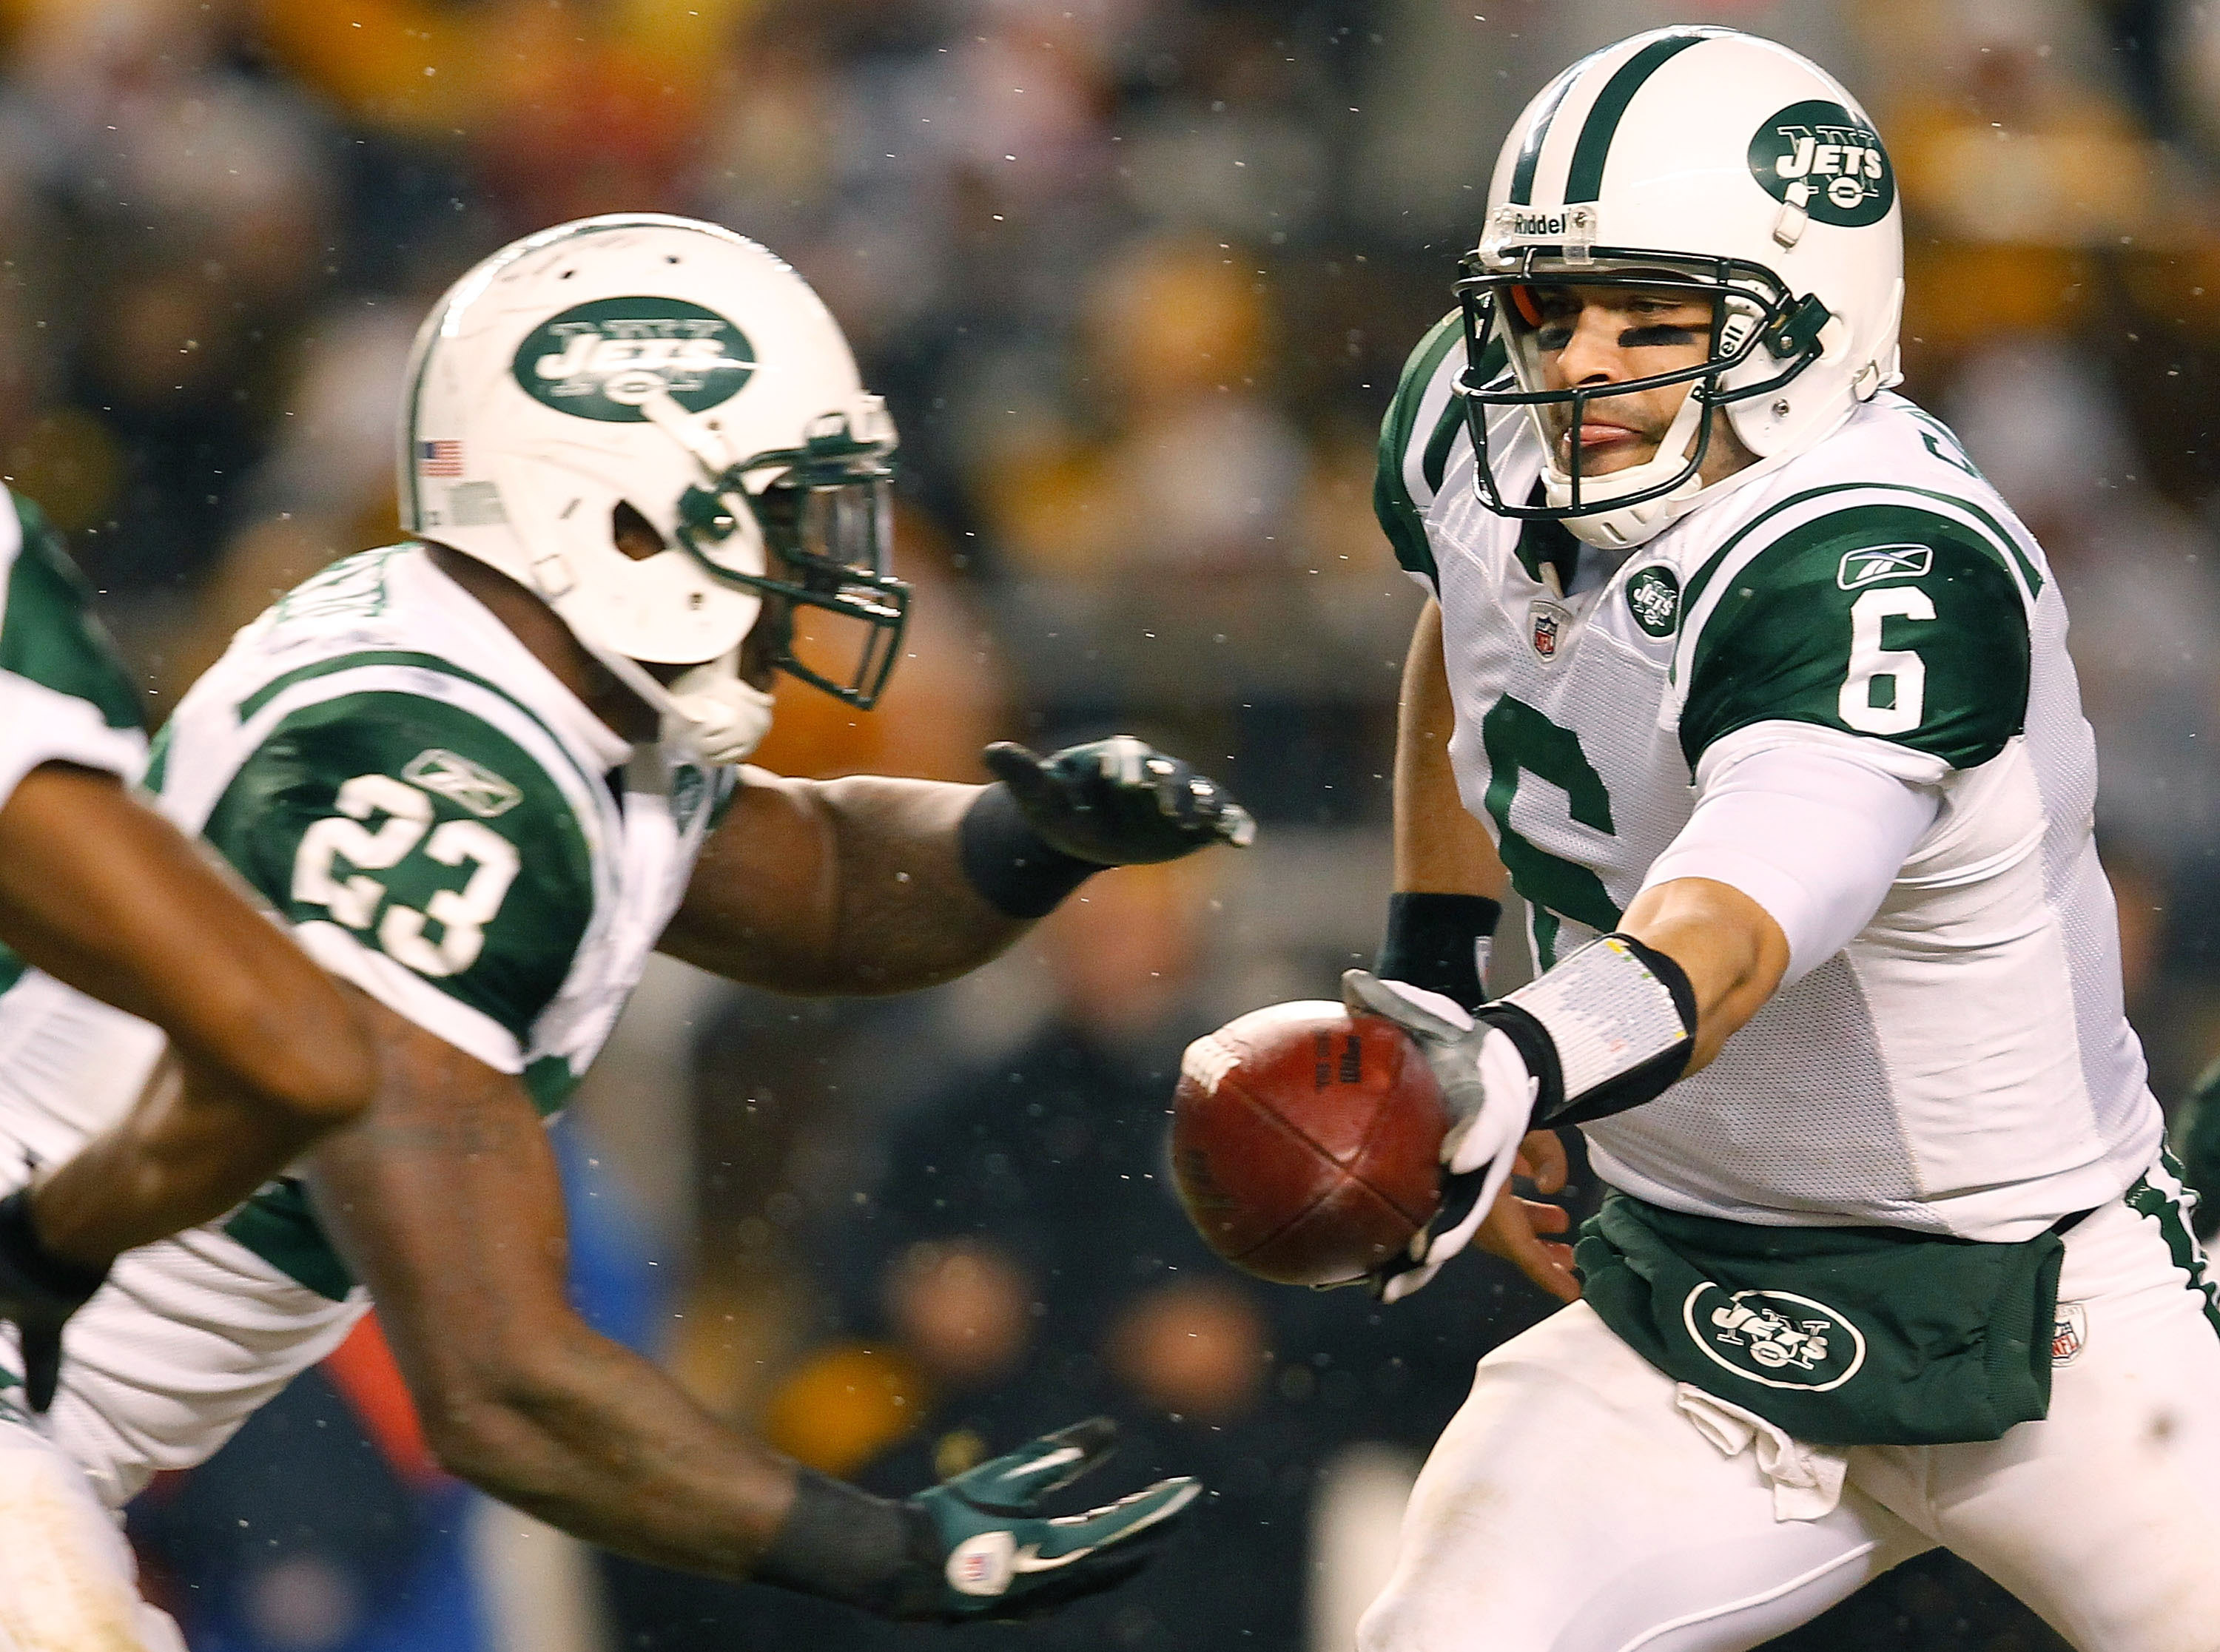 PITTSBURGH - DECEMBER 19:  Mark Sanchez #6 of the New York Jets hands the ball off to teammate Shonn Greene #23 during the game against the Pittsburgh Steelers on December 19, 2010 at Heinz Field in Pittsburgh, Pennsylvania.  (Photo by Jared Wickerham/Get